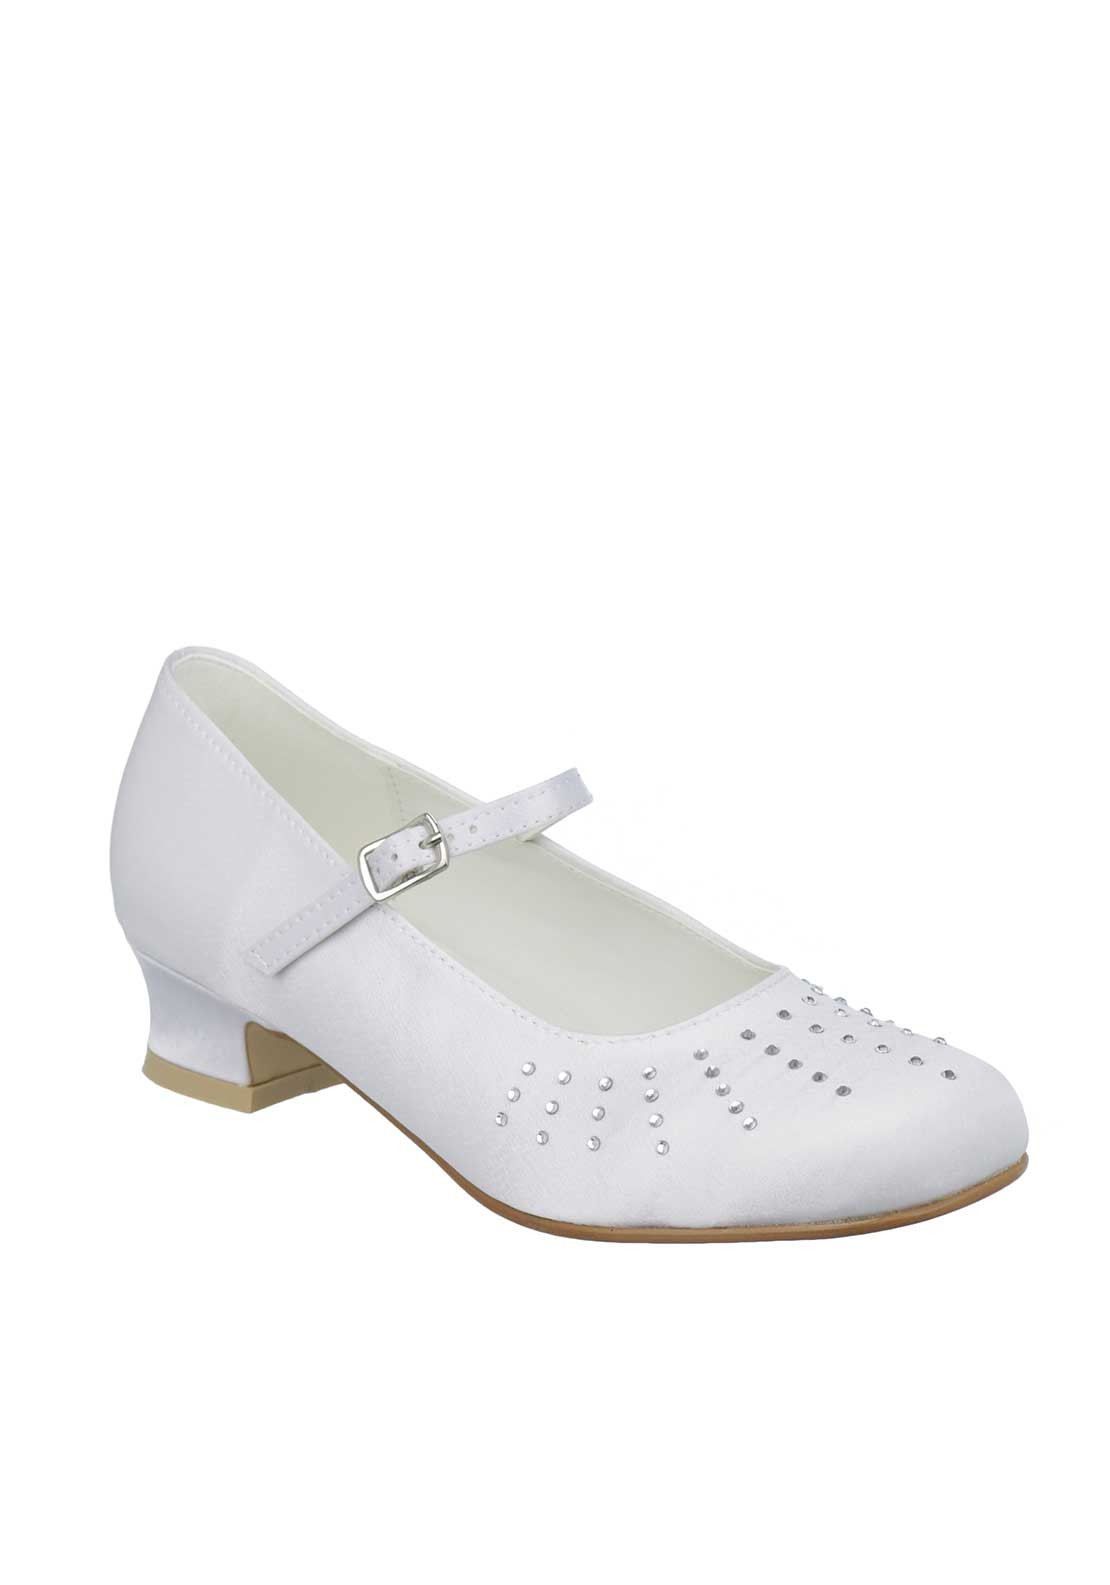 Little People Jewelled Satin Communion Shoes, White